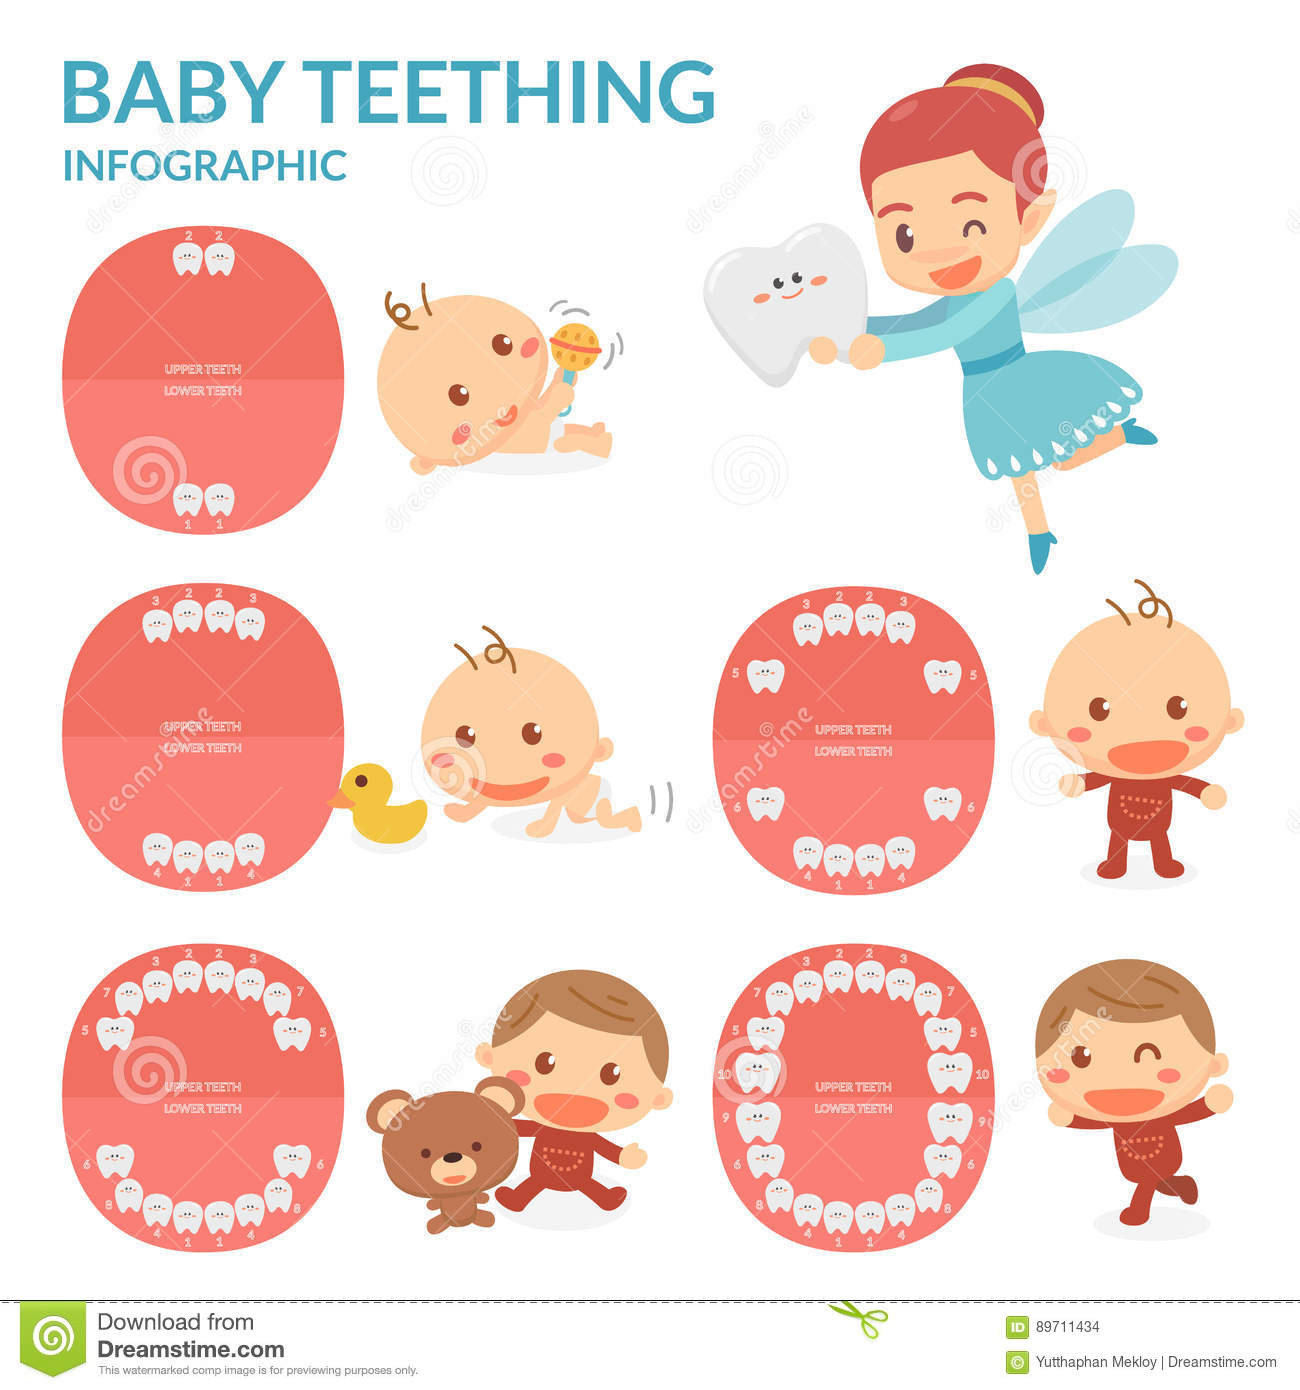 Baby Teething Tooth Fairy Period Of Eruption And Shedding Of Baby